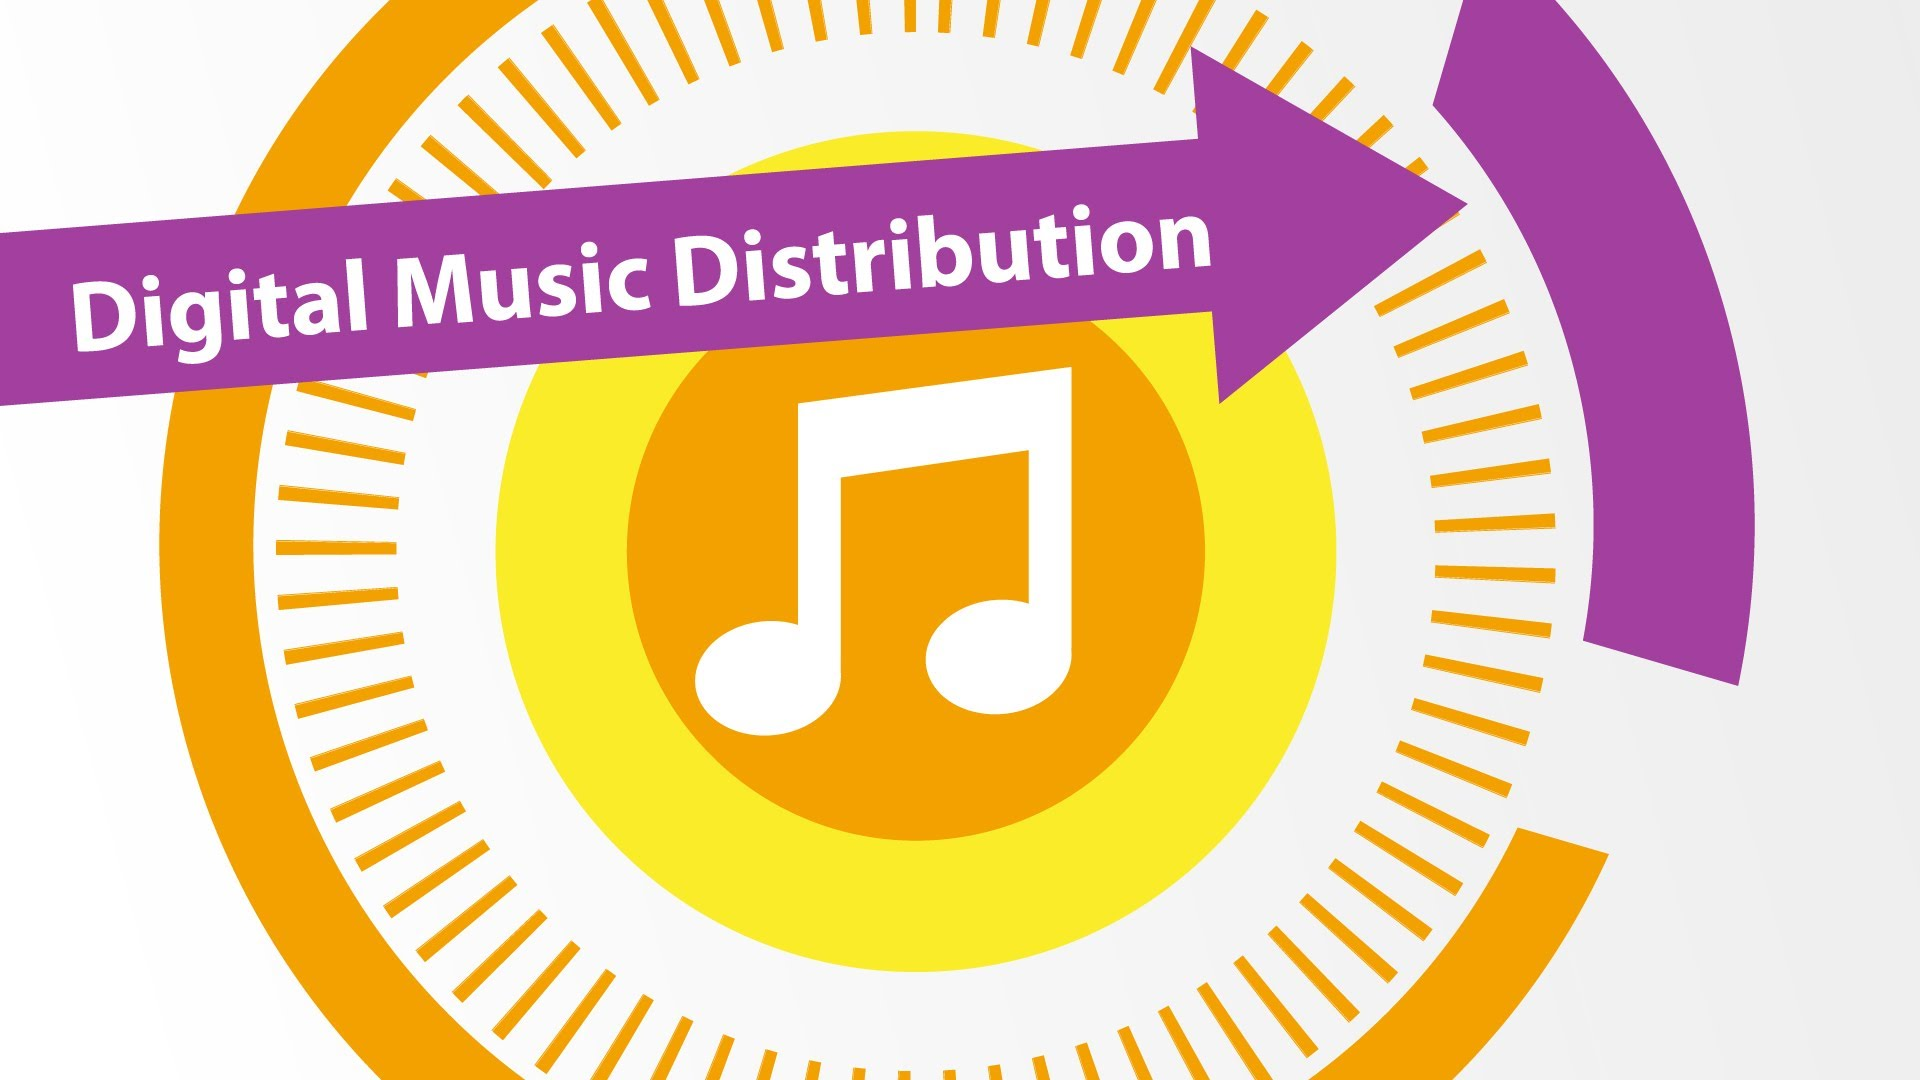 Music Distribution Services